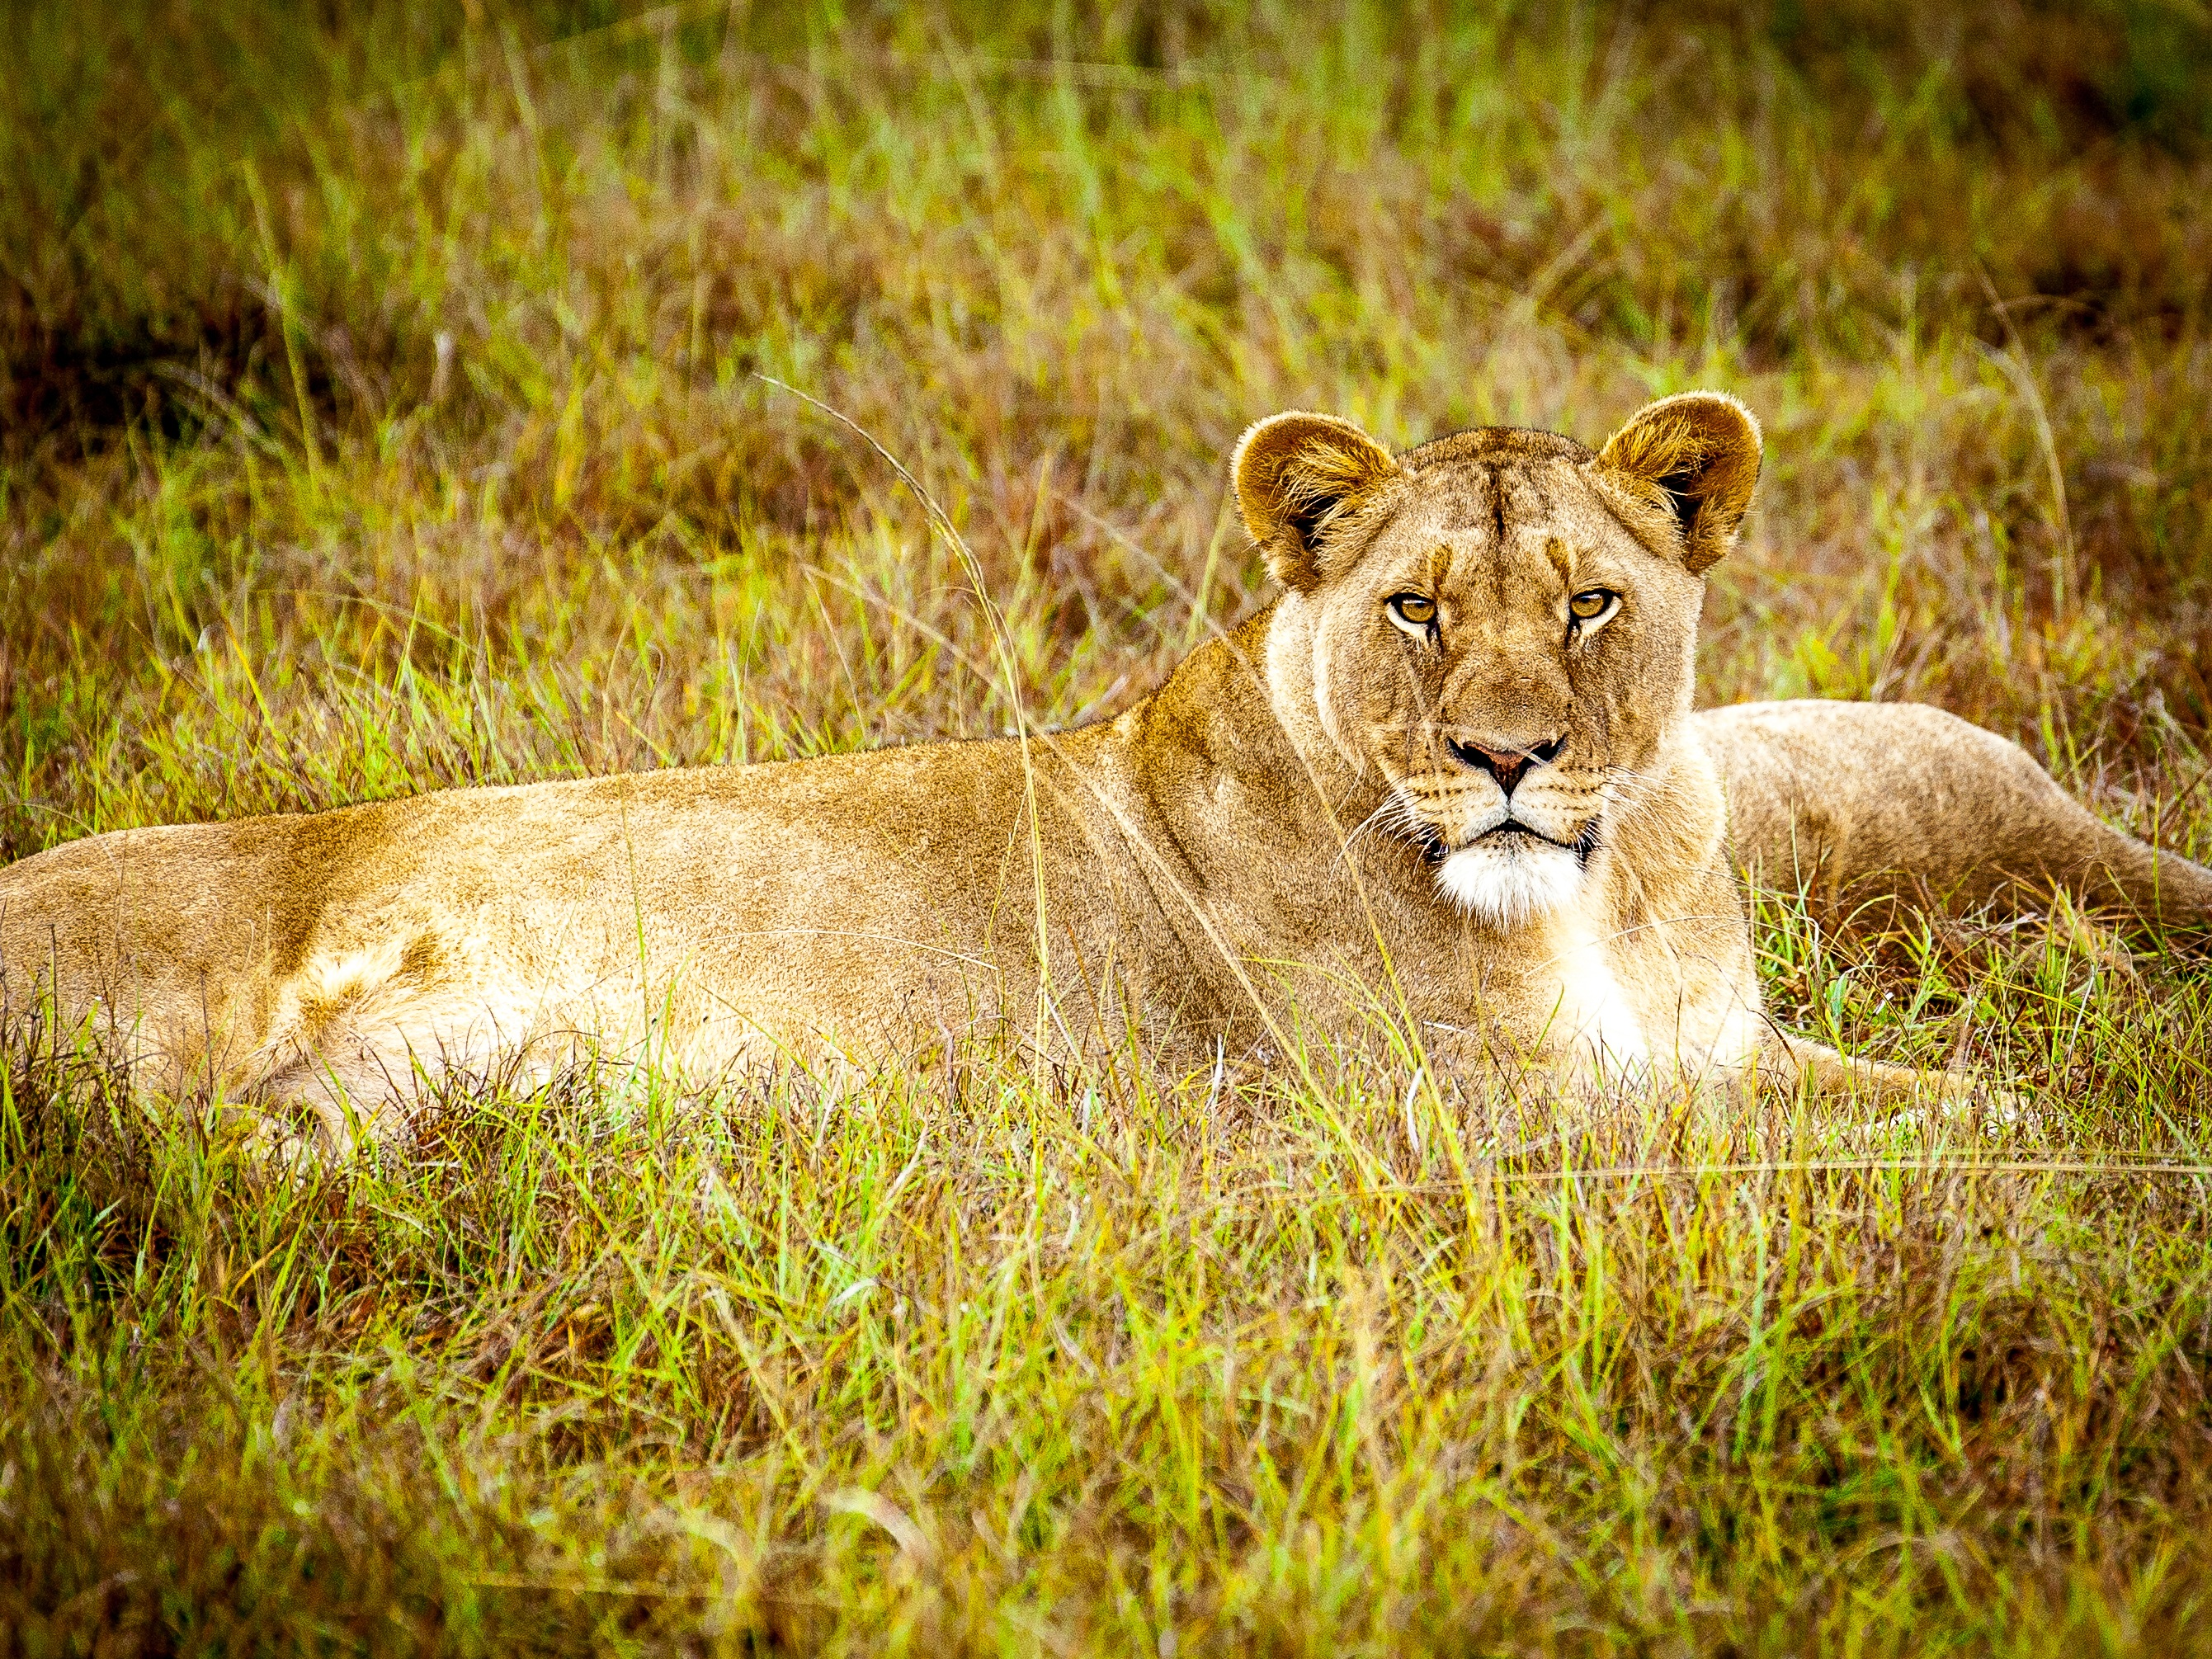 Lion Animal Wallpaper Cougar Animal 183 Free Stock Photo